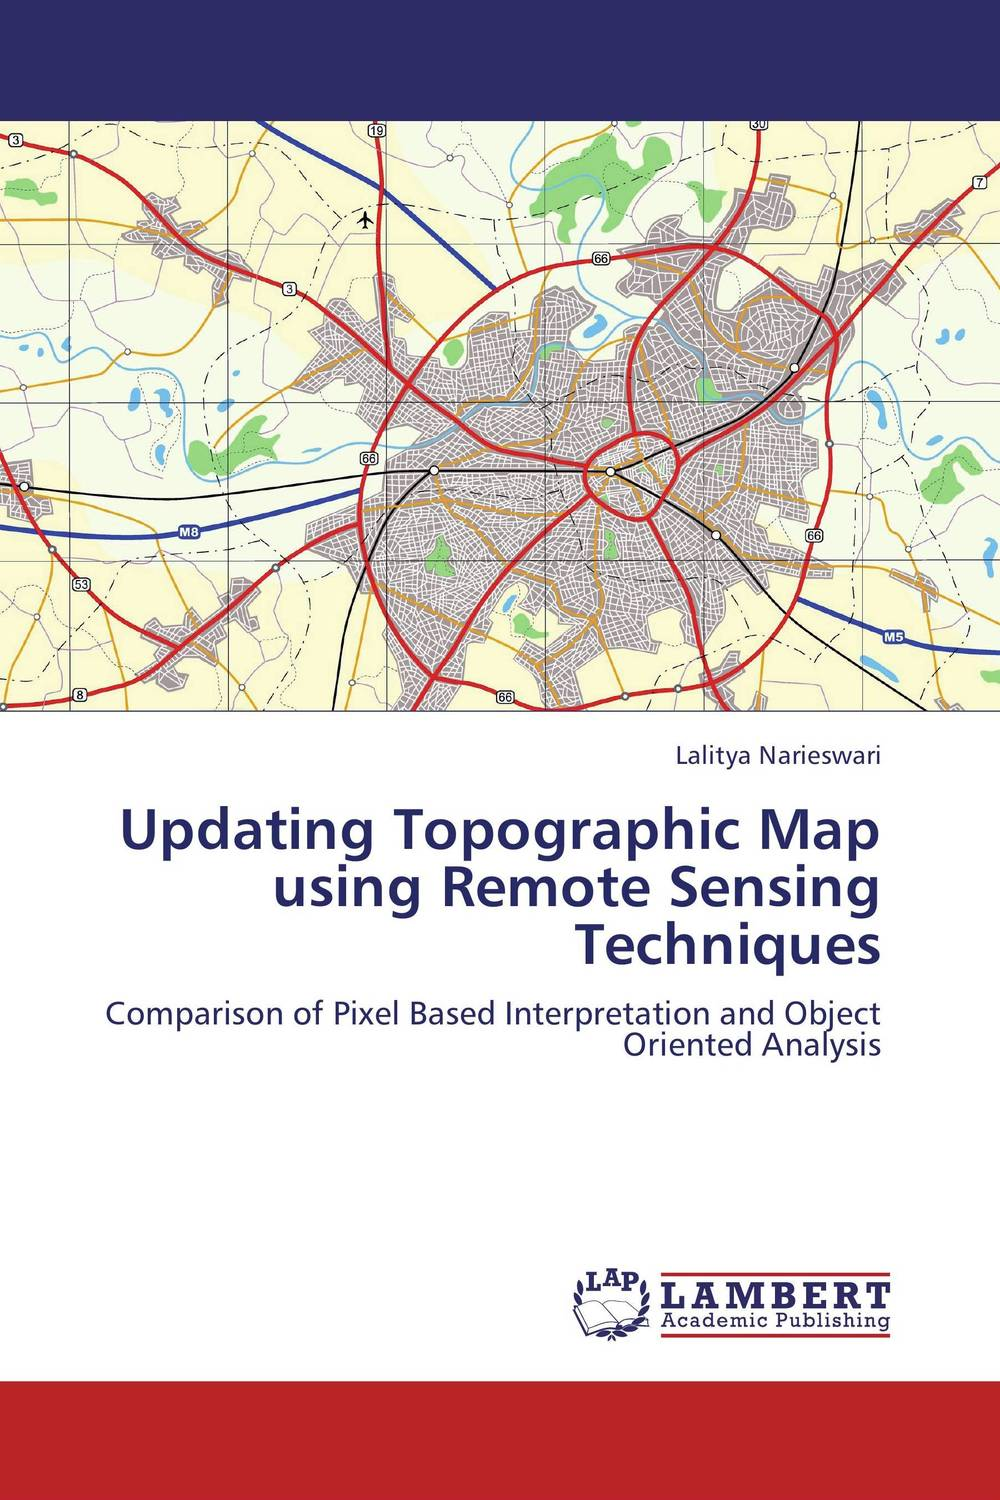 Updating Topographic Map using Remote Sensing Techniques extracting nature areas using object oriented analysis